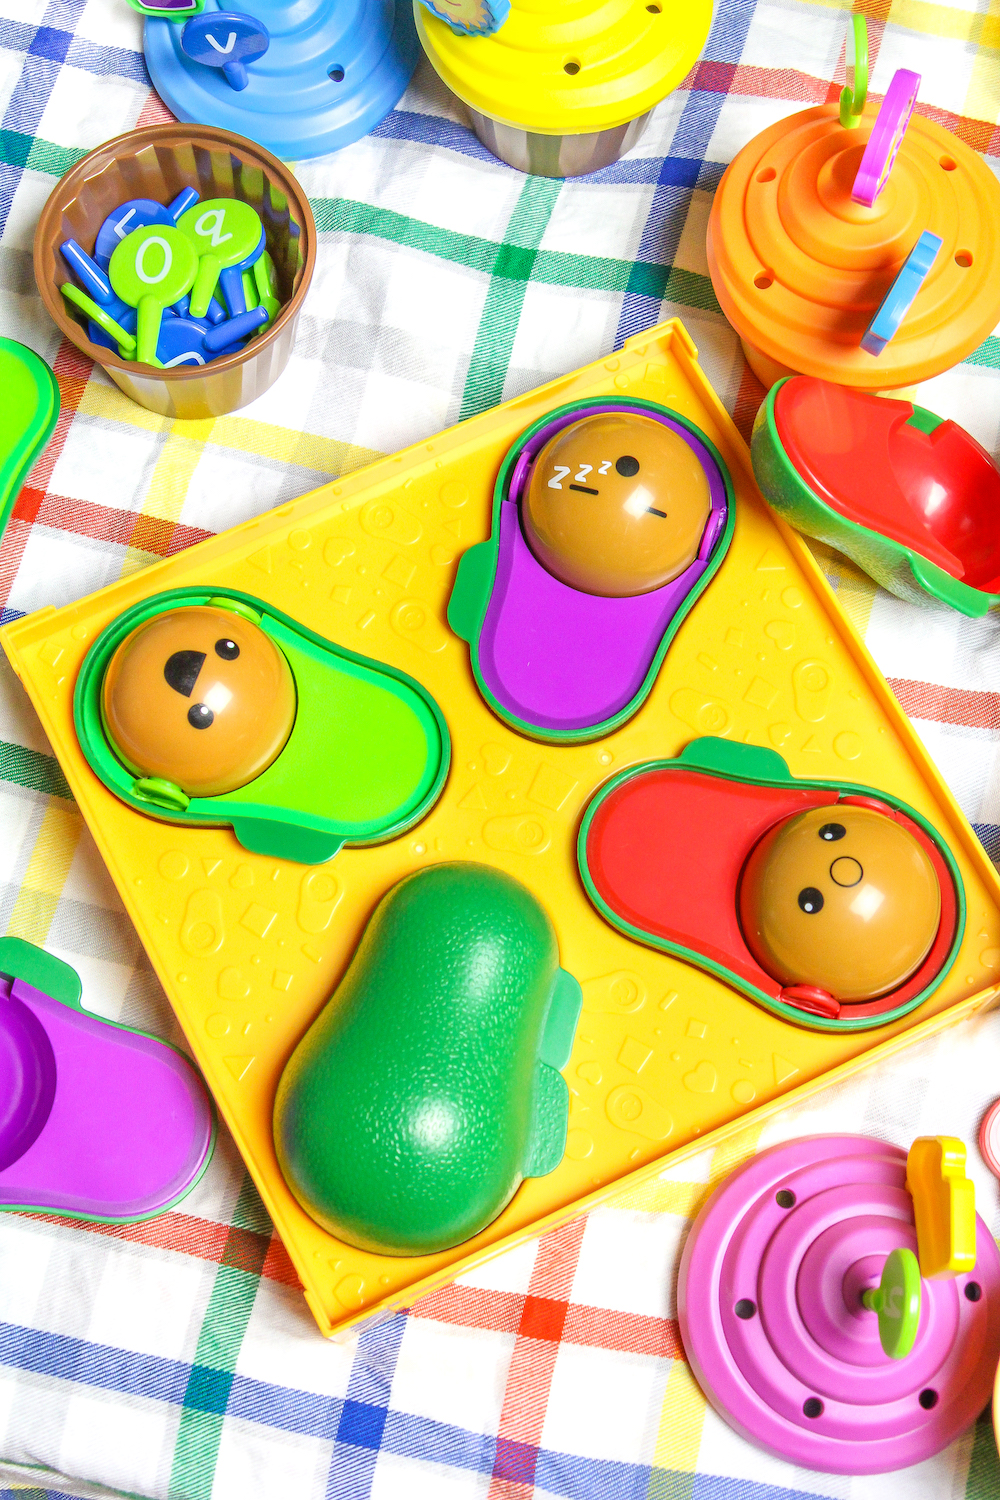 Colorful Toddler At Home Learning: Learning Resources ...